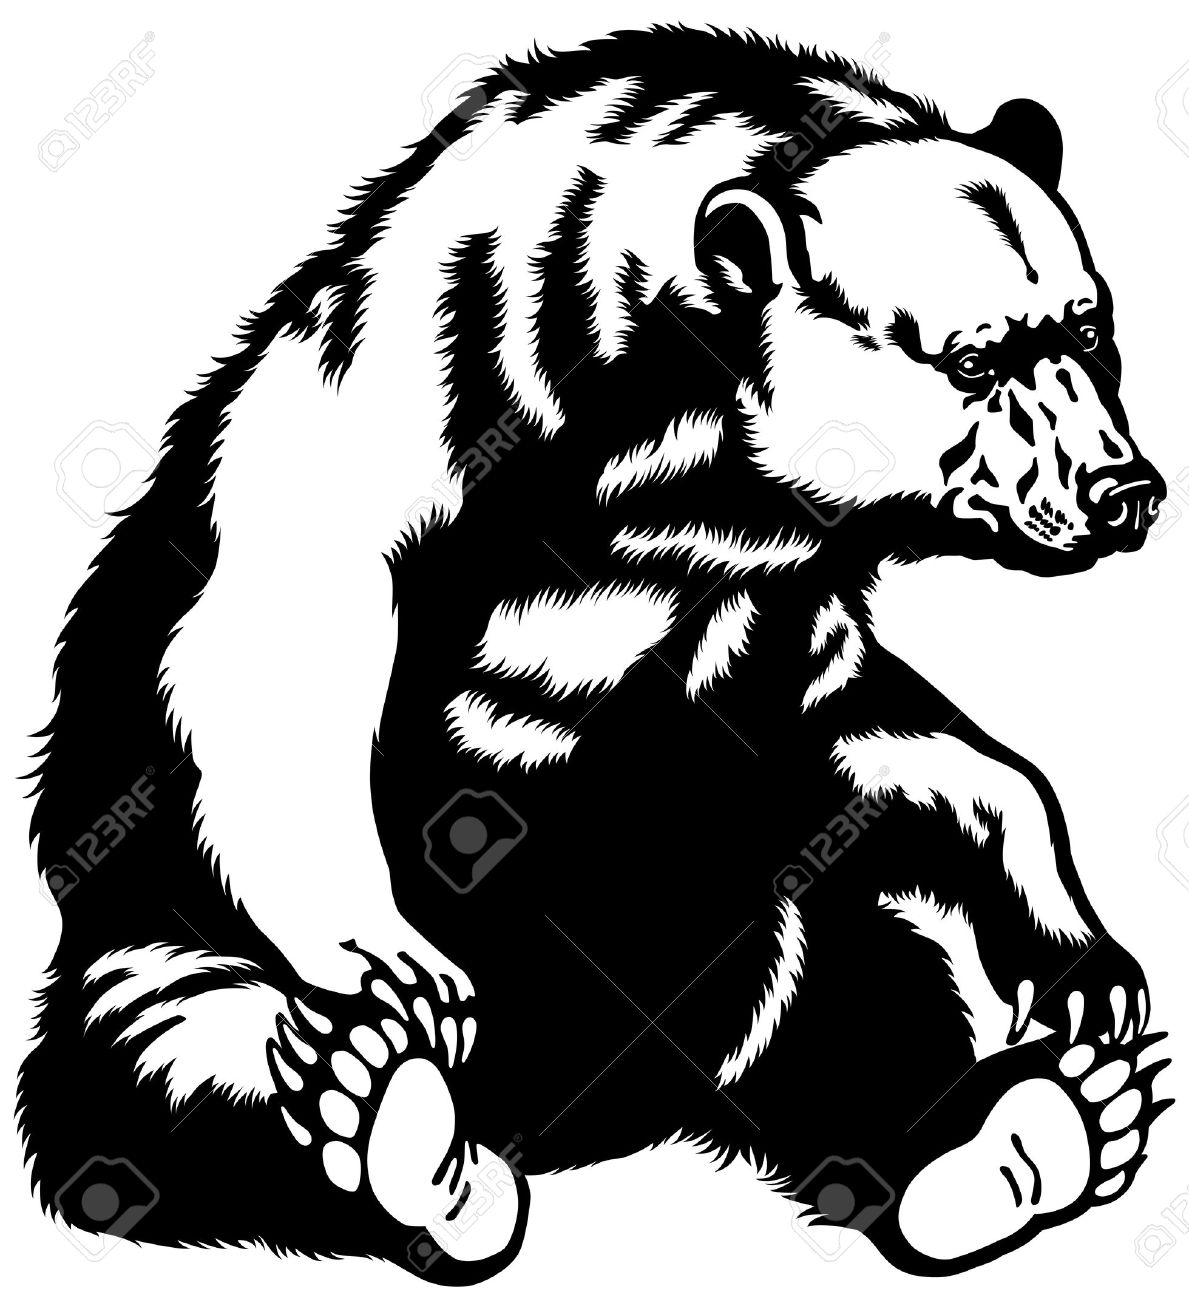 Grizzly Family clipart #10, Download drawings